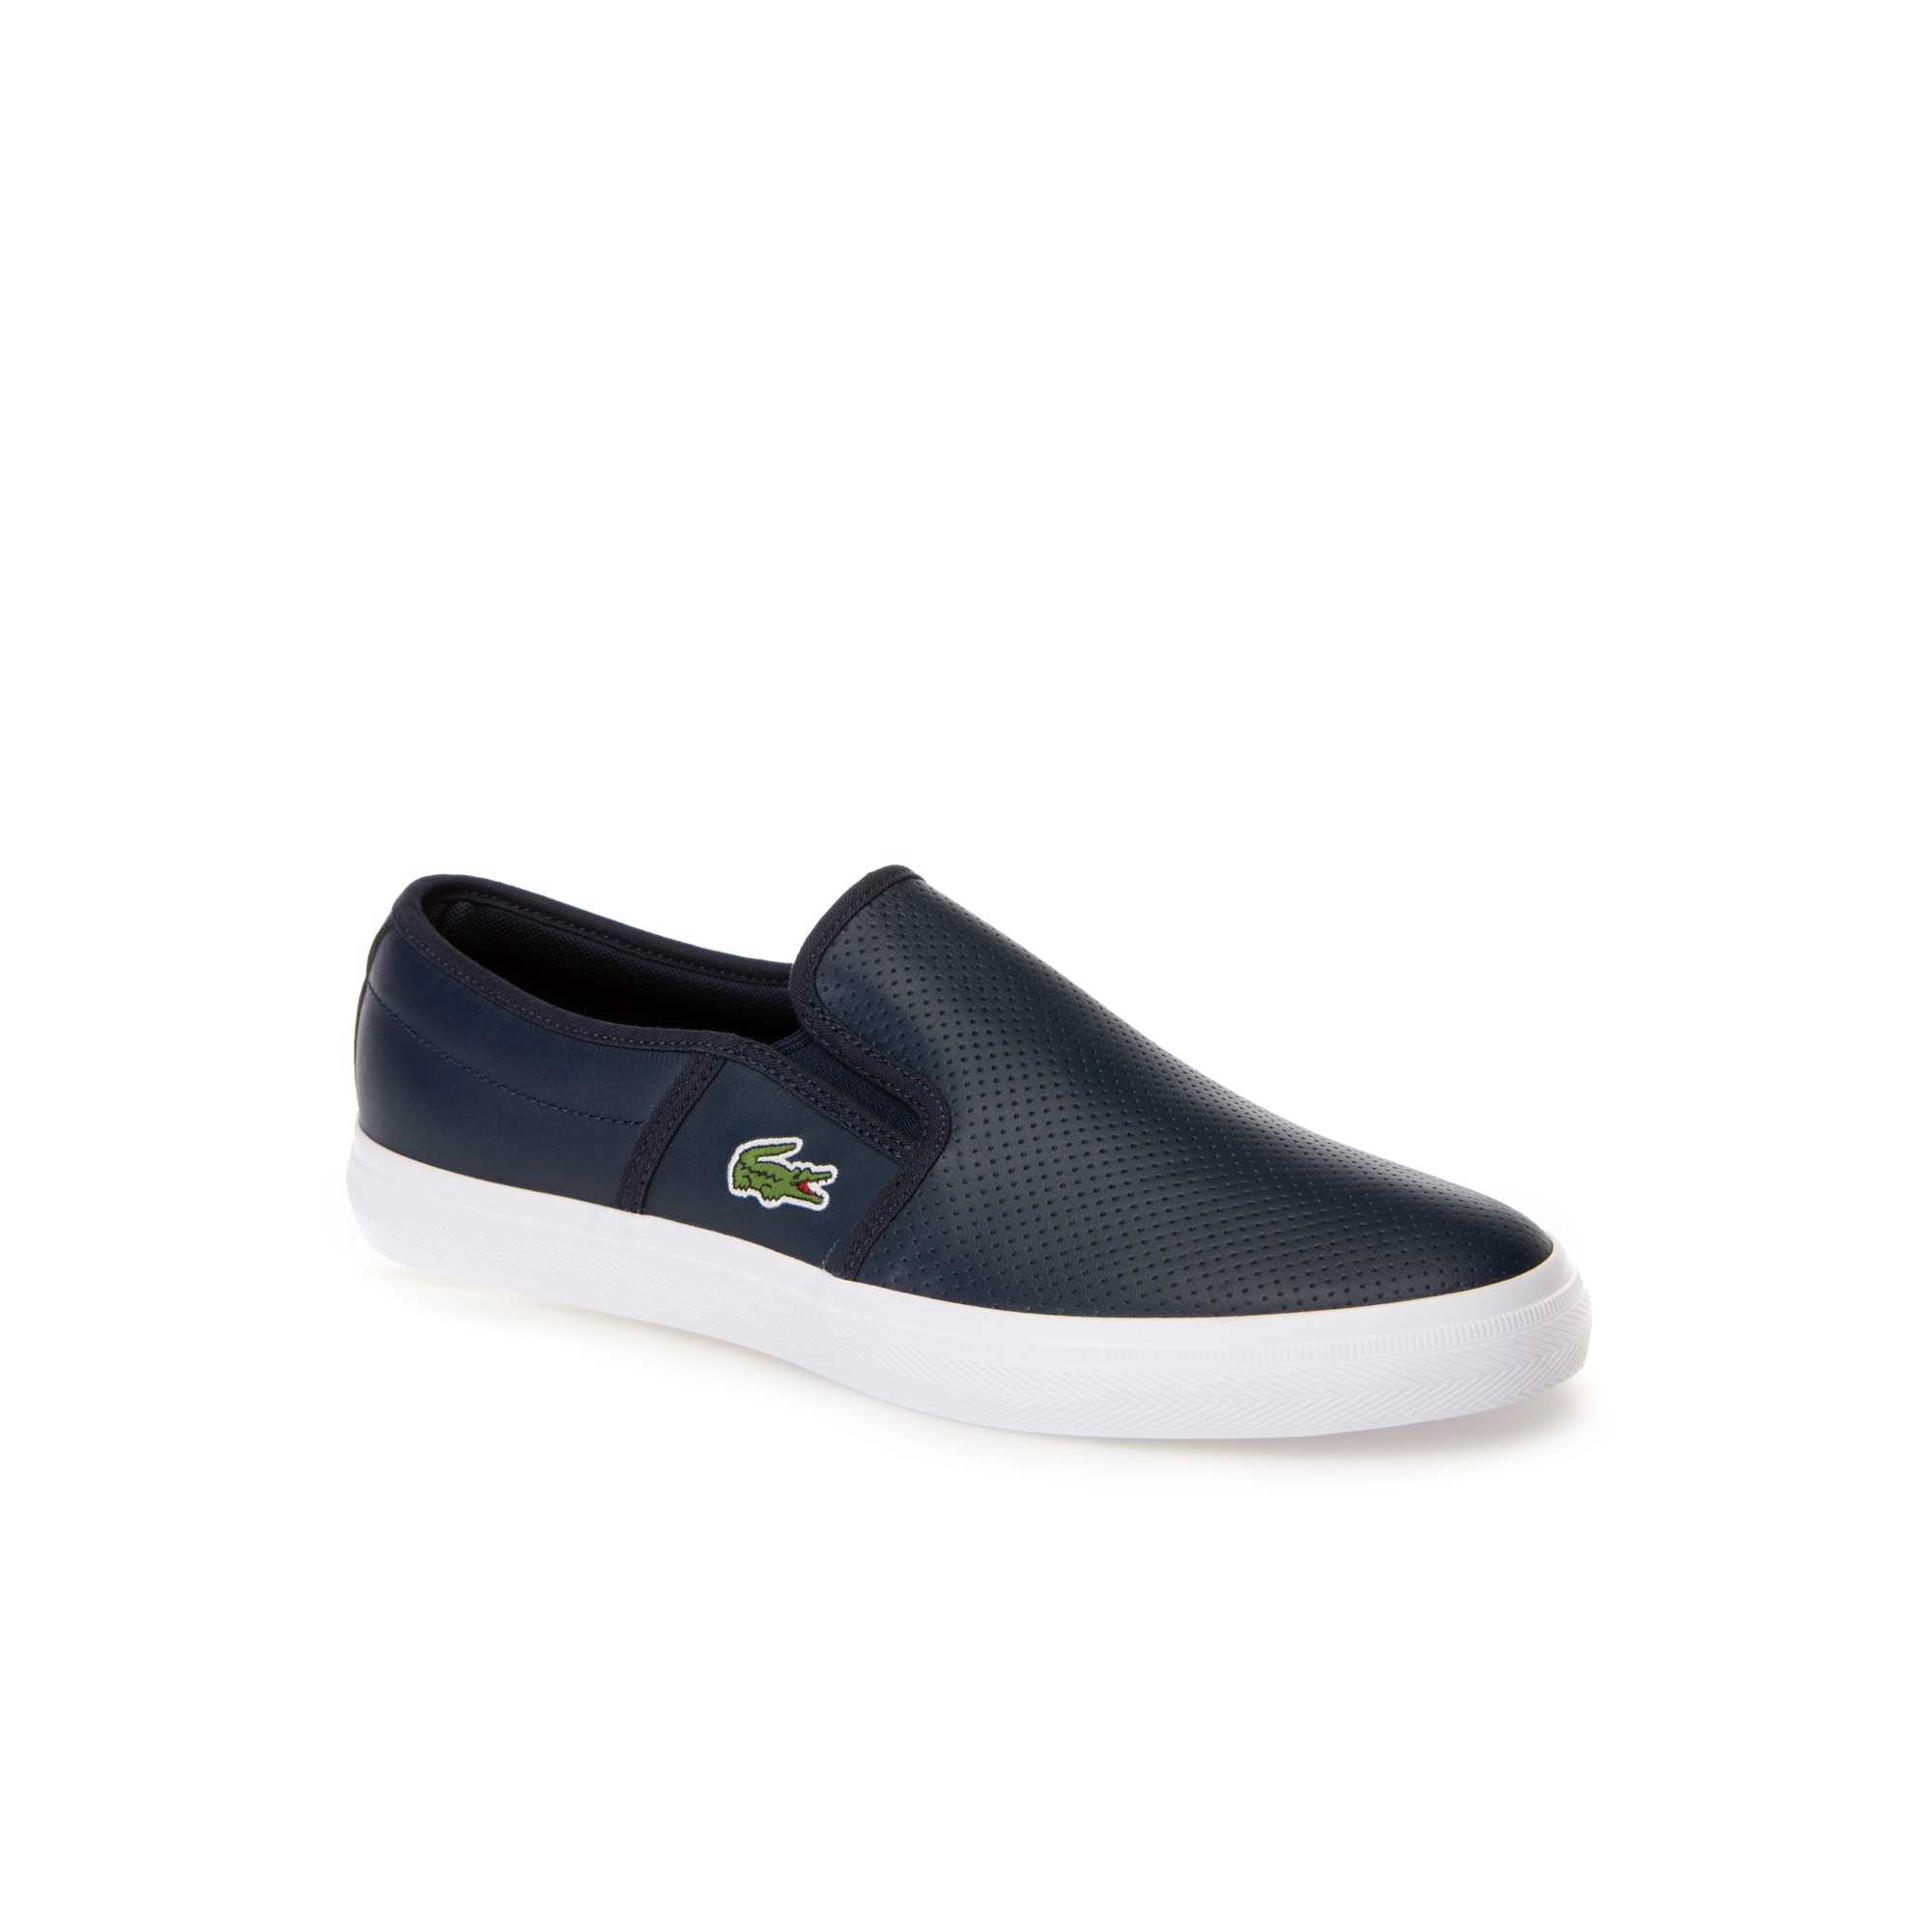 Men's Gazon Nappa Leather Slip-Ons